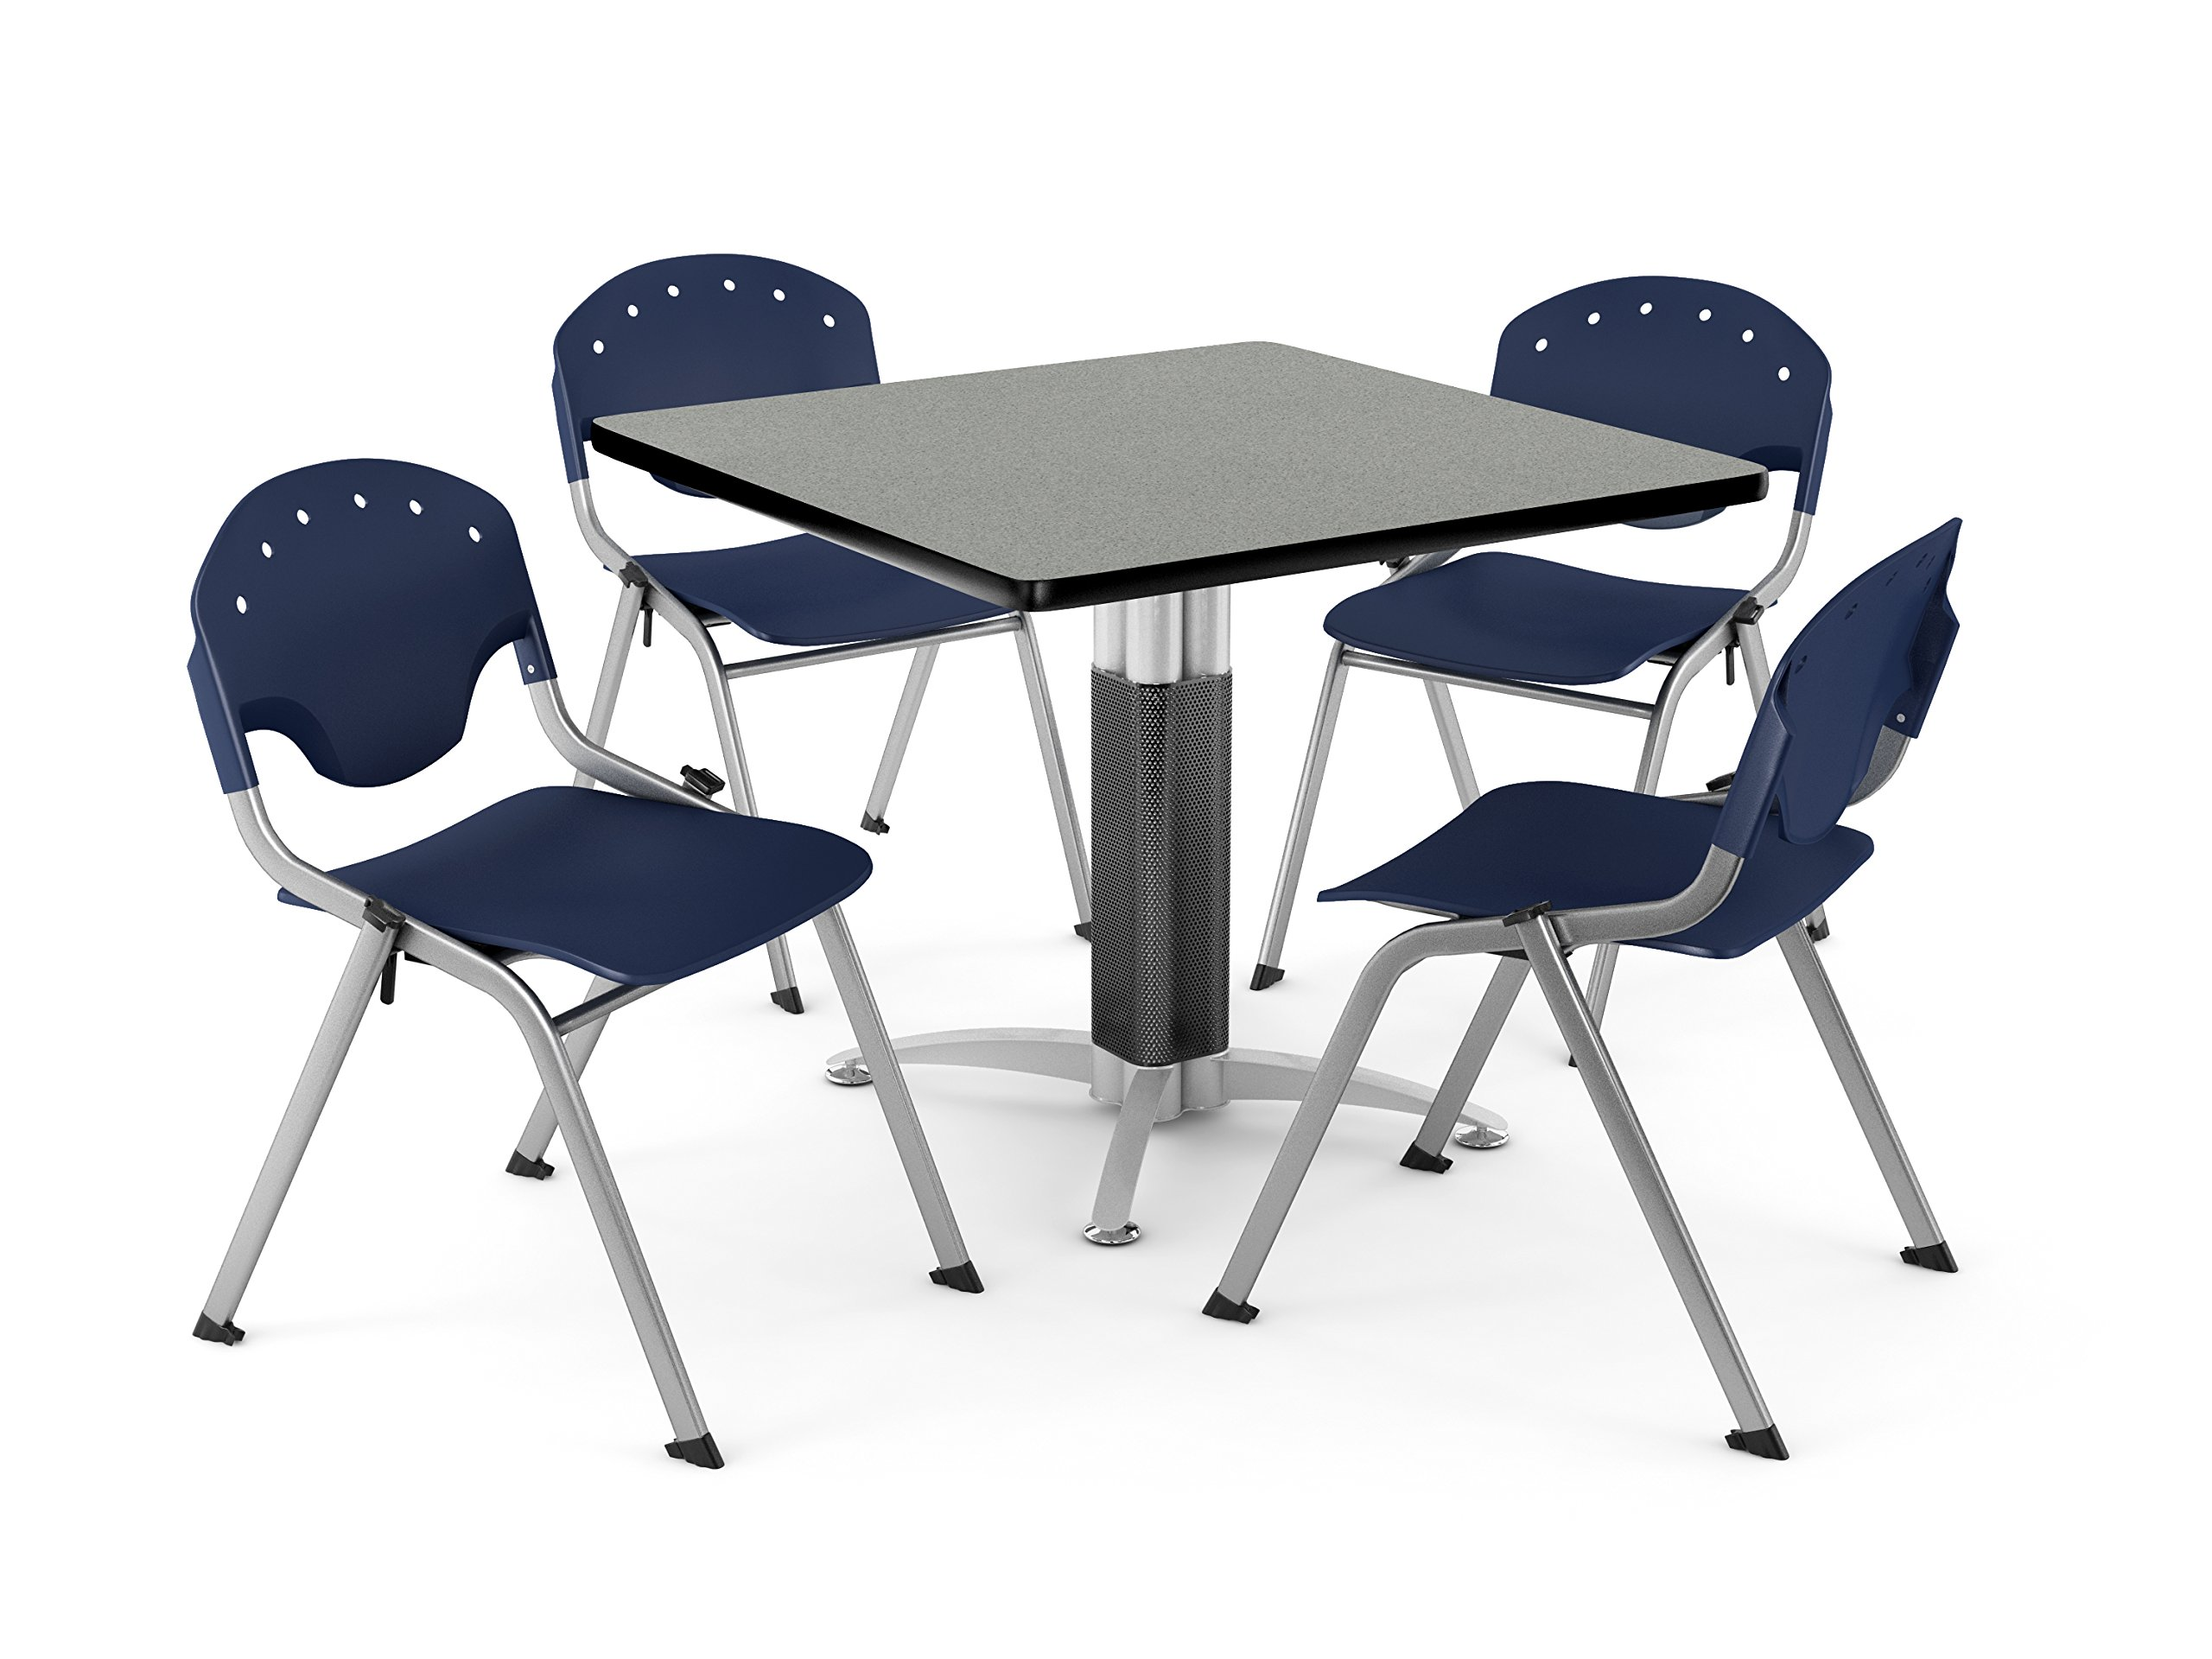 OFM PKG-BRK-024-0011 Breakroom Package, Gray Nebula Table/Navy Chair